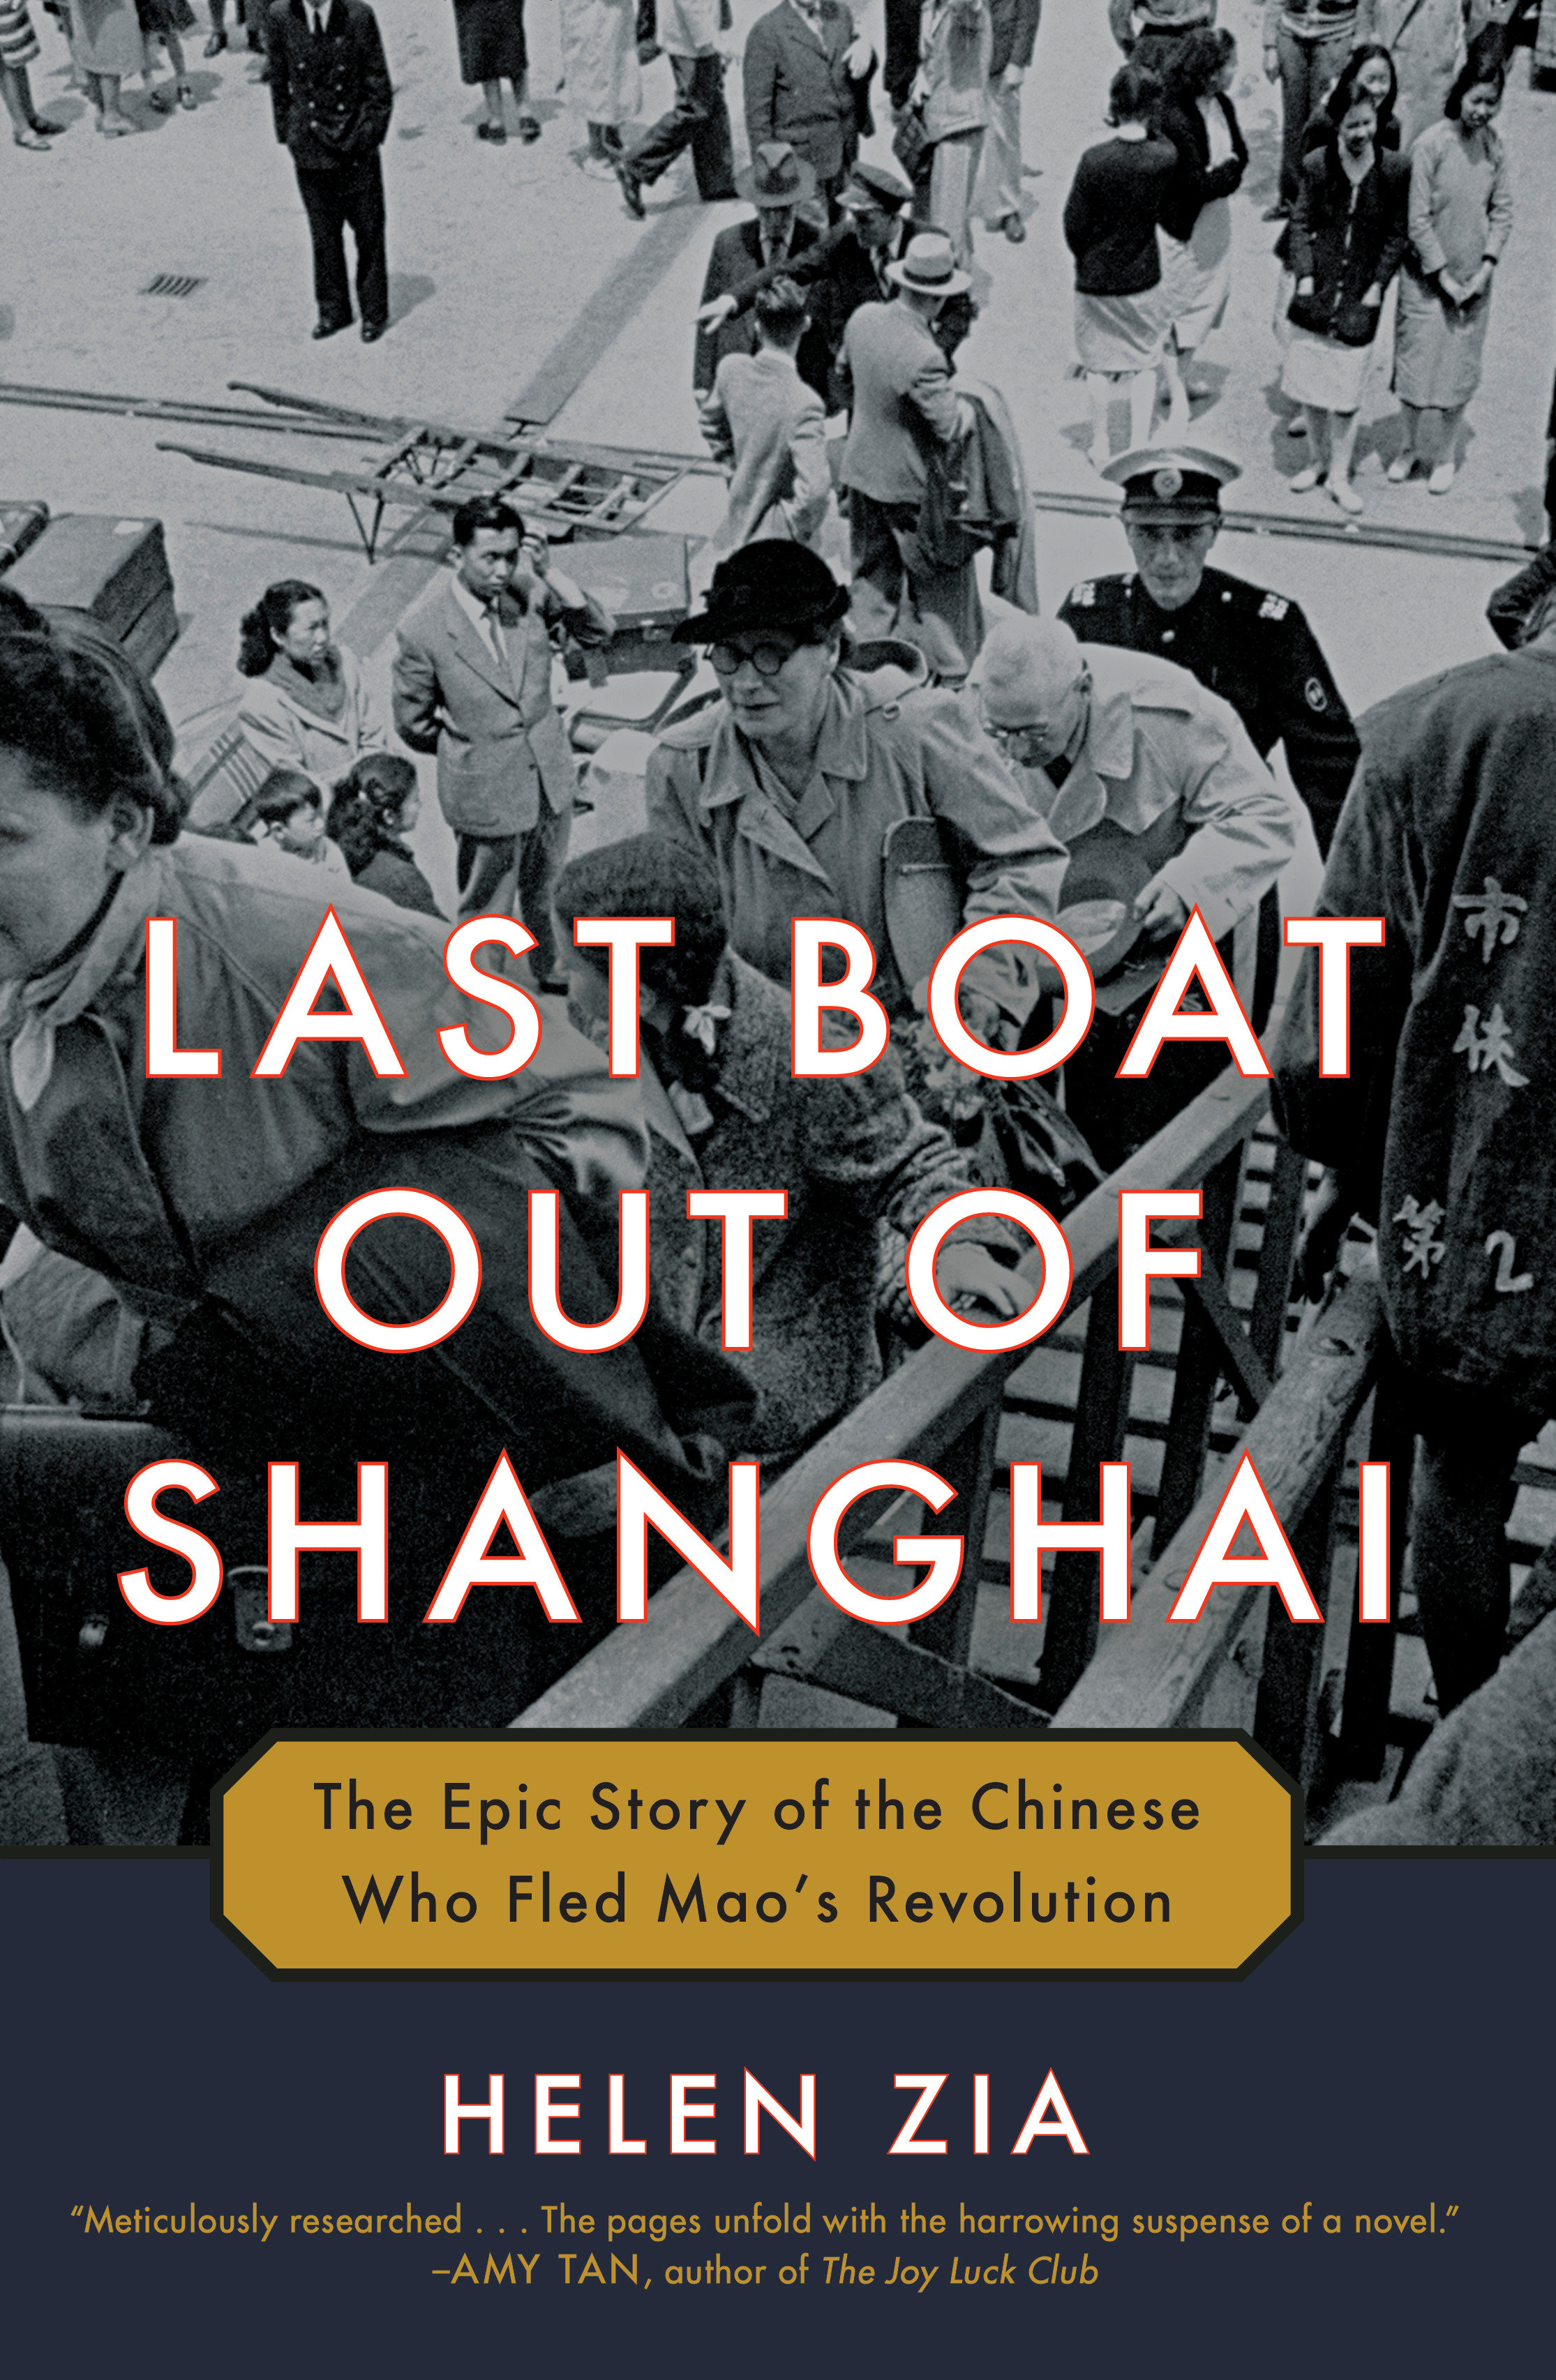 Last Boat Out of Shanghai The Epic Story of the Chinese Who Fled Mao's Revolution